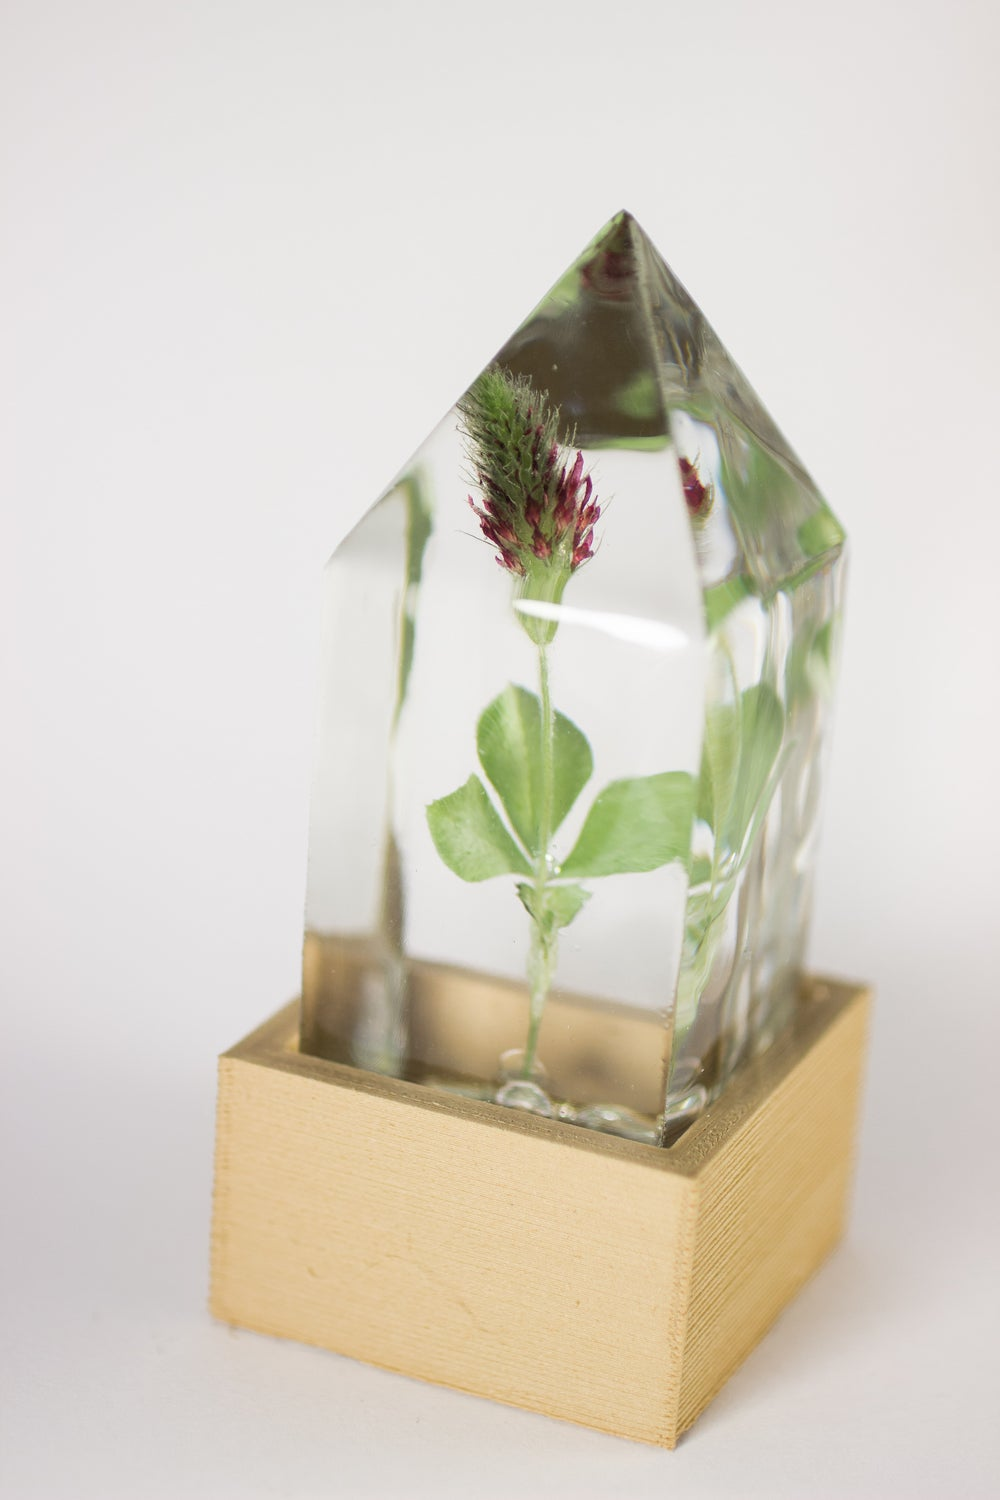 Image of Crimson Clover (Trifolium incarnatum) - Floral Prism Nightlight #2